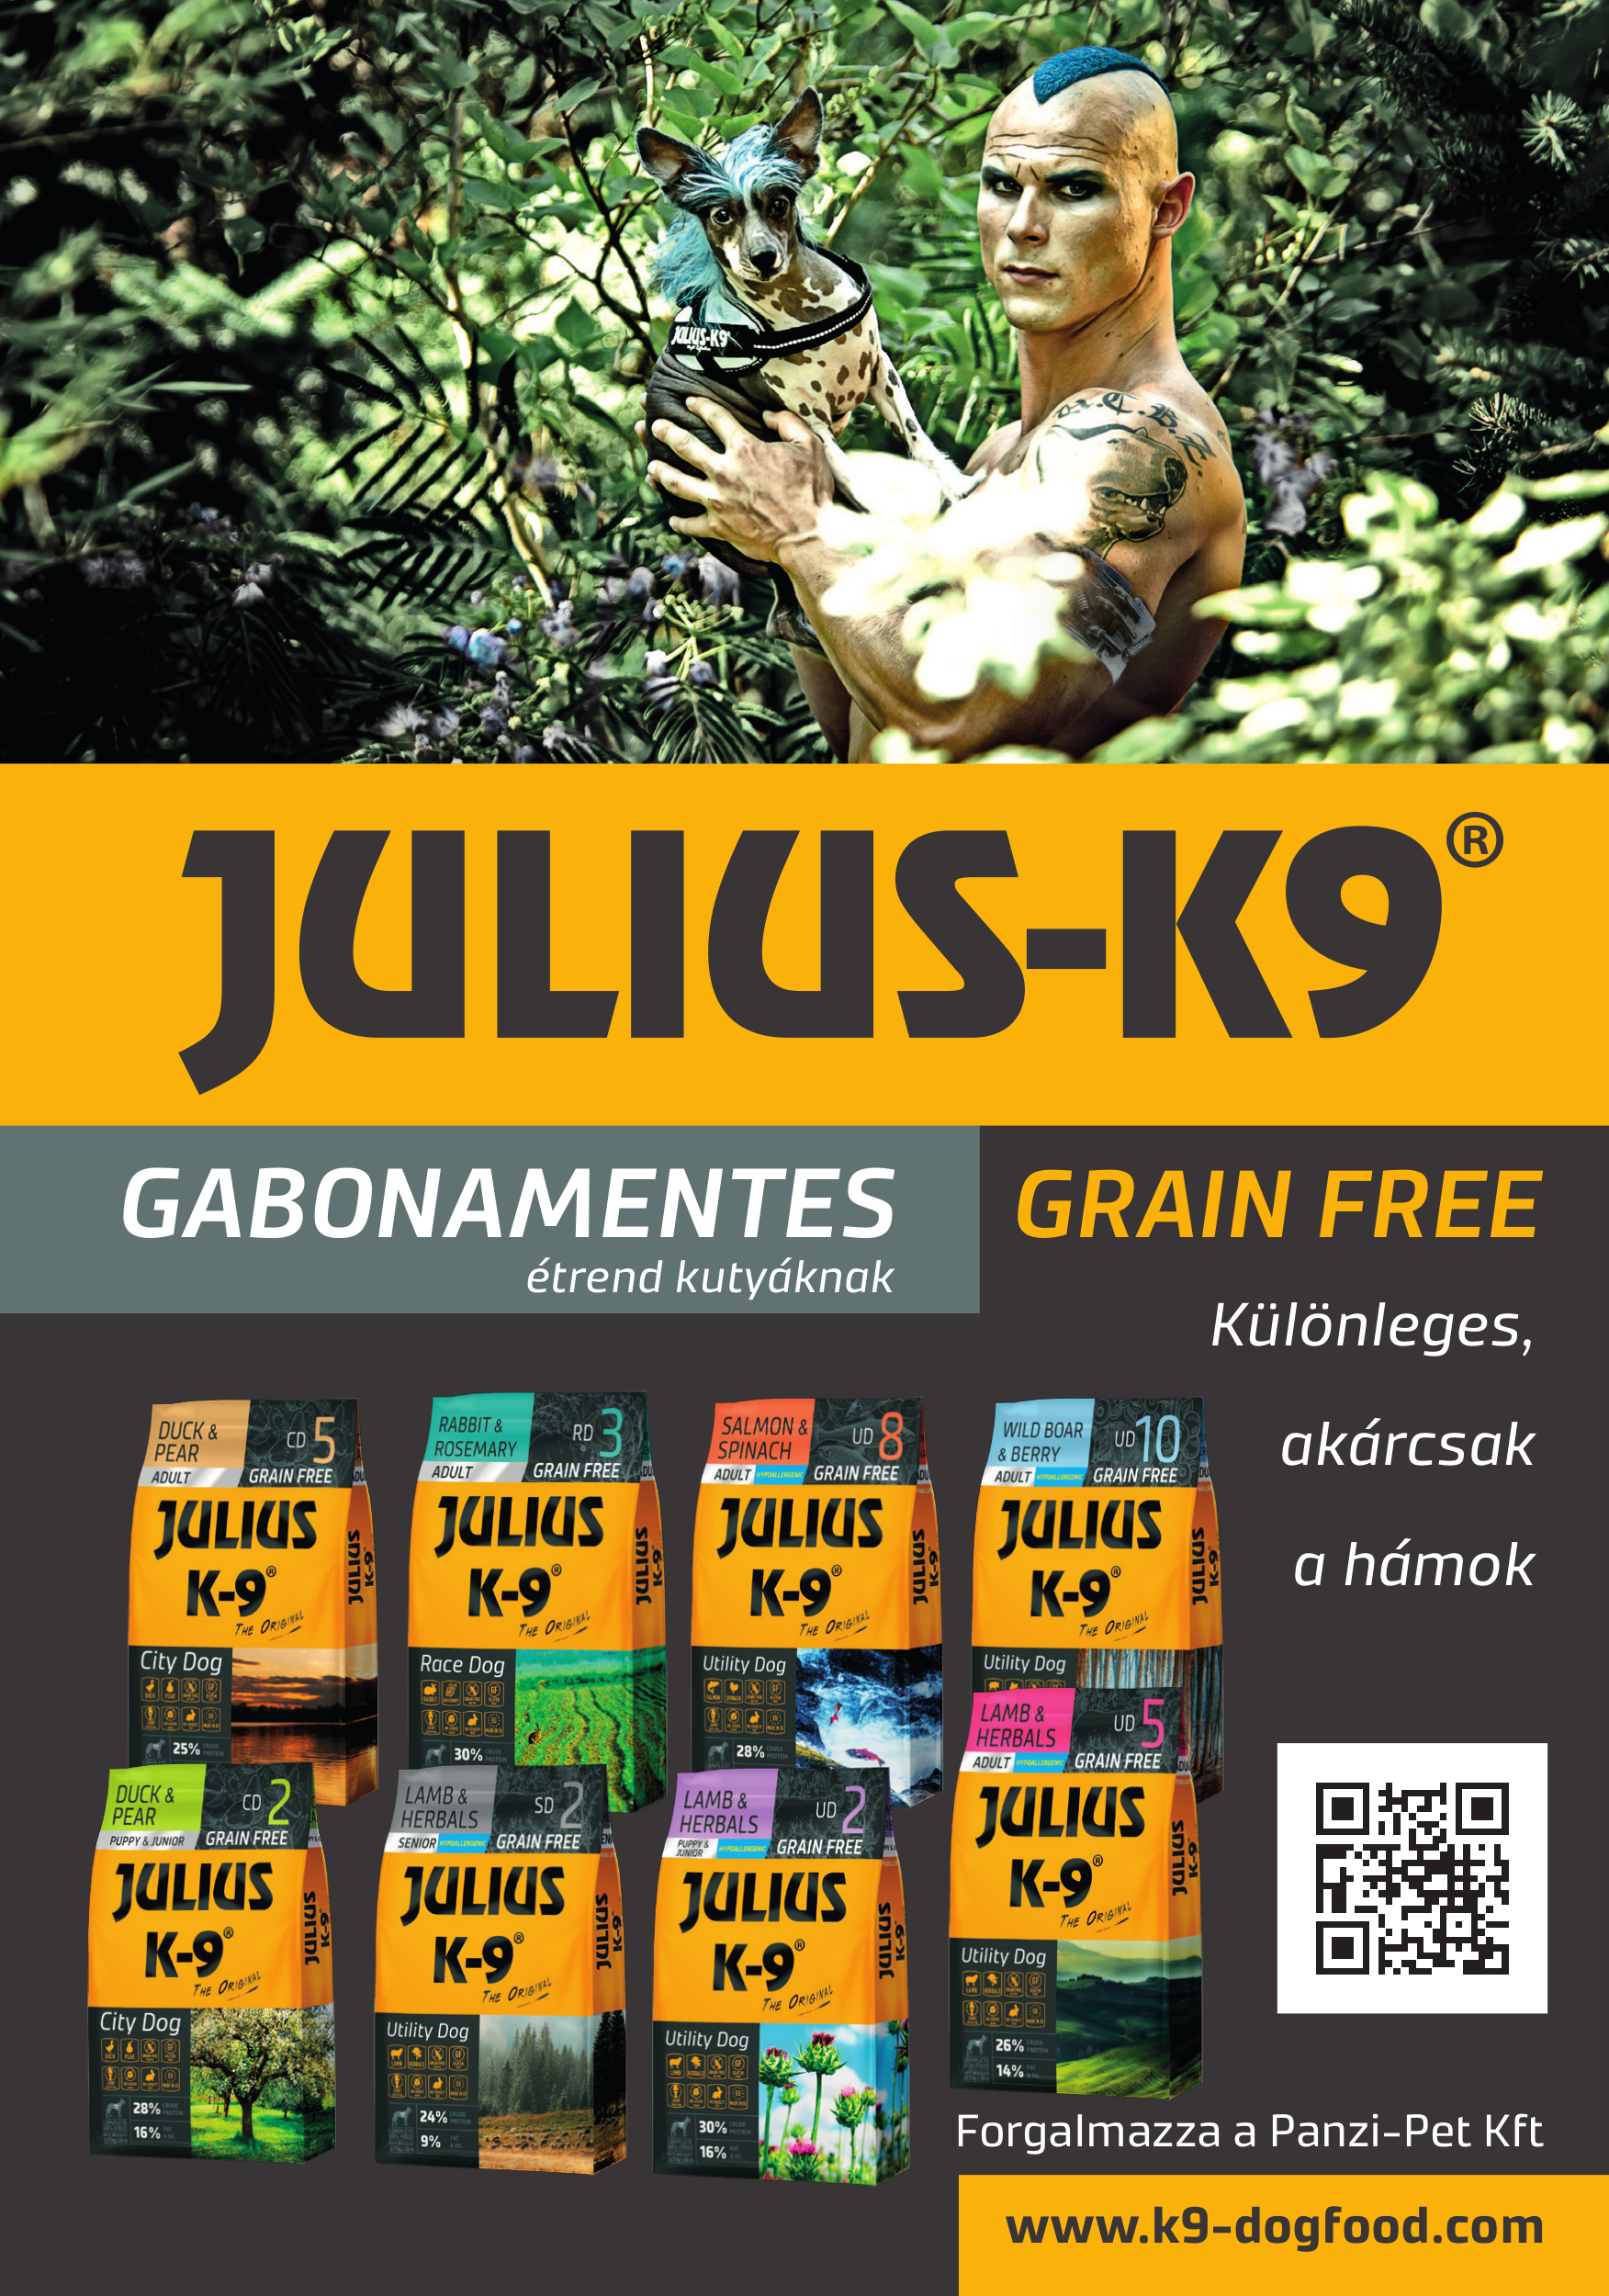 Julius-K9 Dogfood